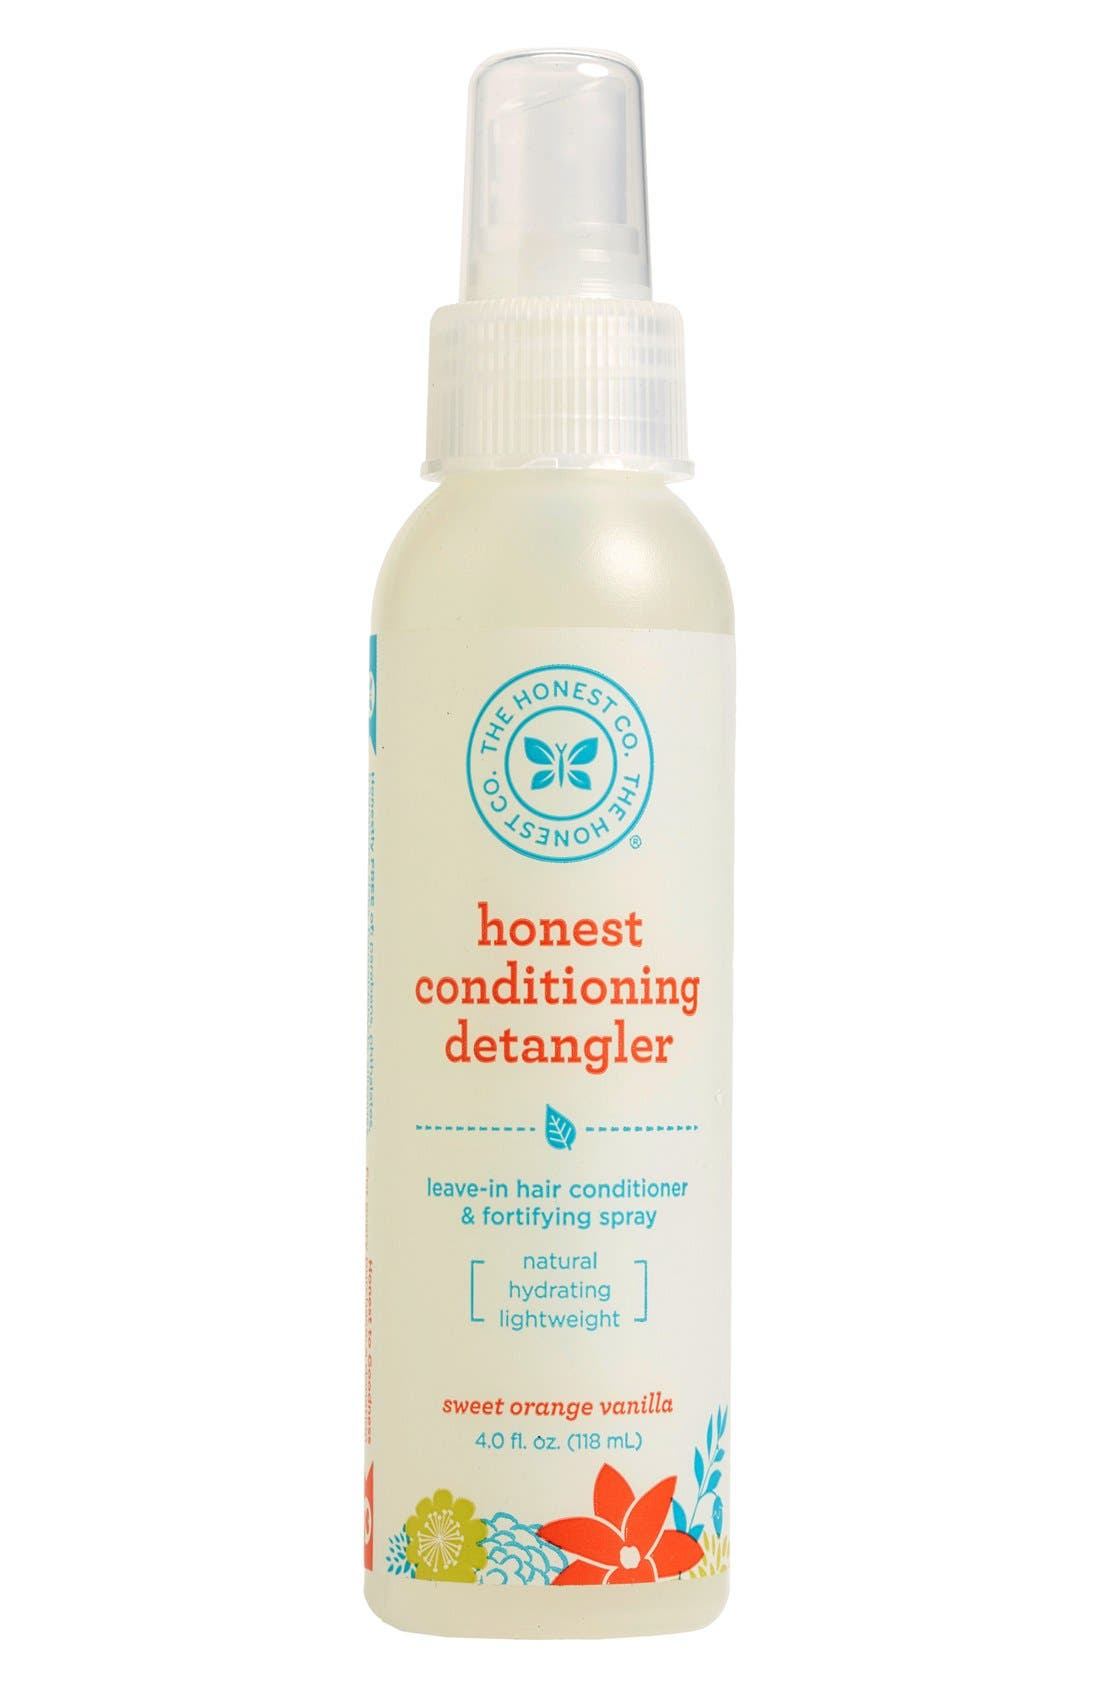 The Honest Company Leave-in Conditioning Detangler Spray